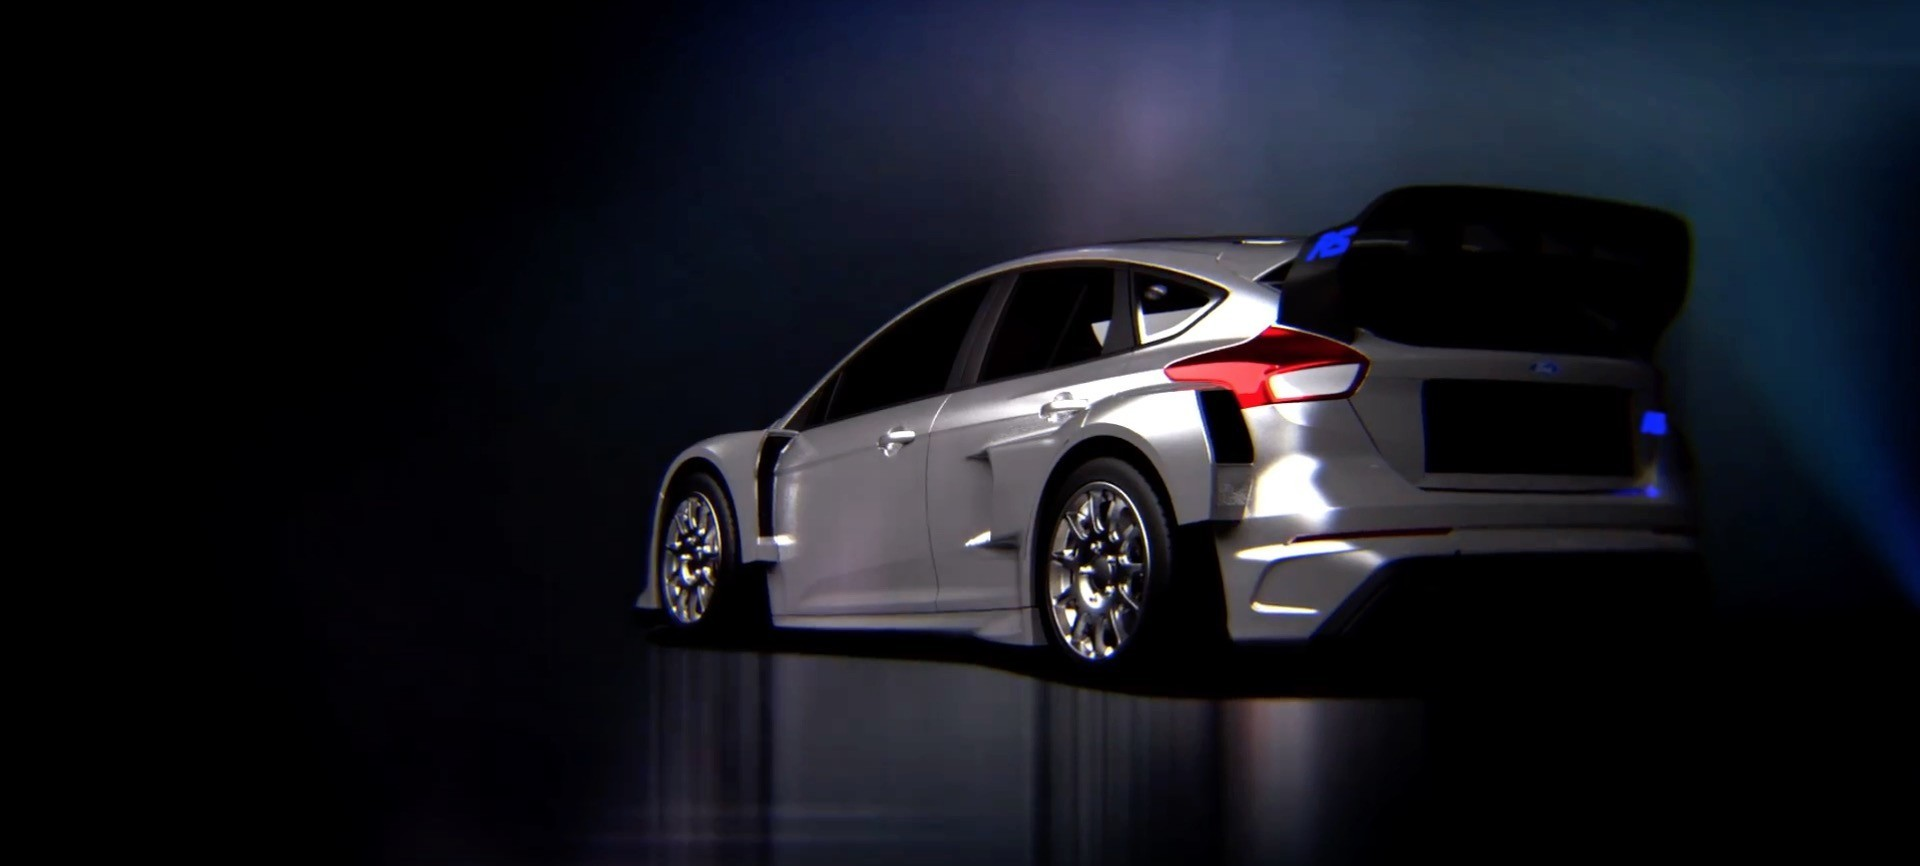 2016 Ford Focus RS Rallycross Car Confirmed, Here Are the ...